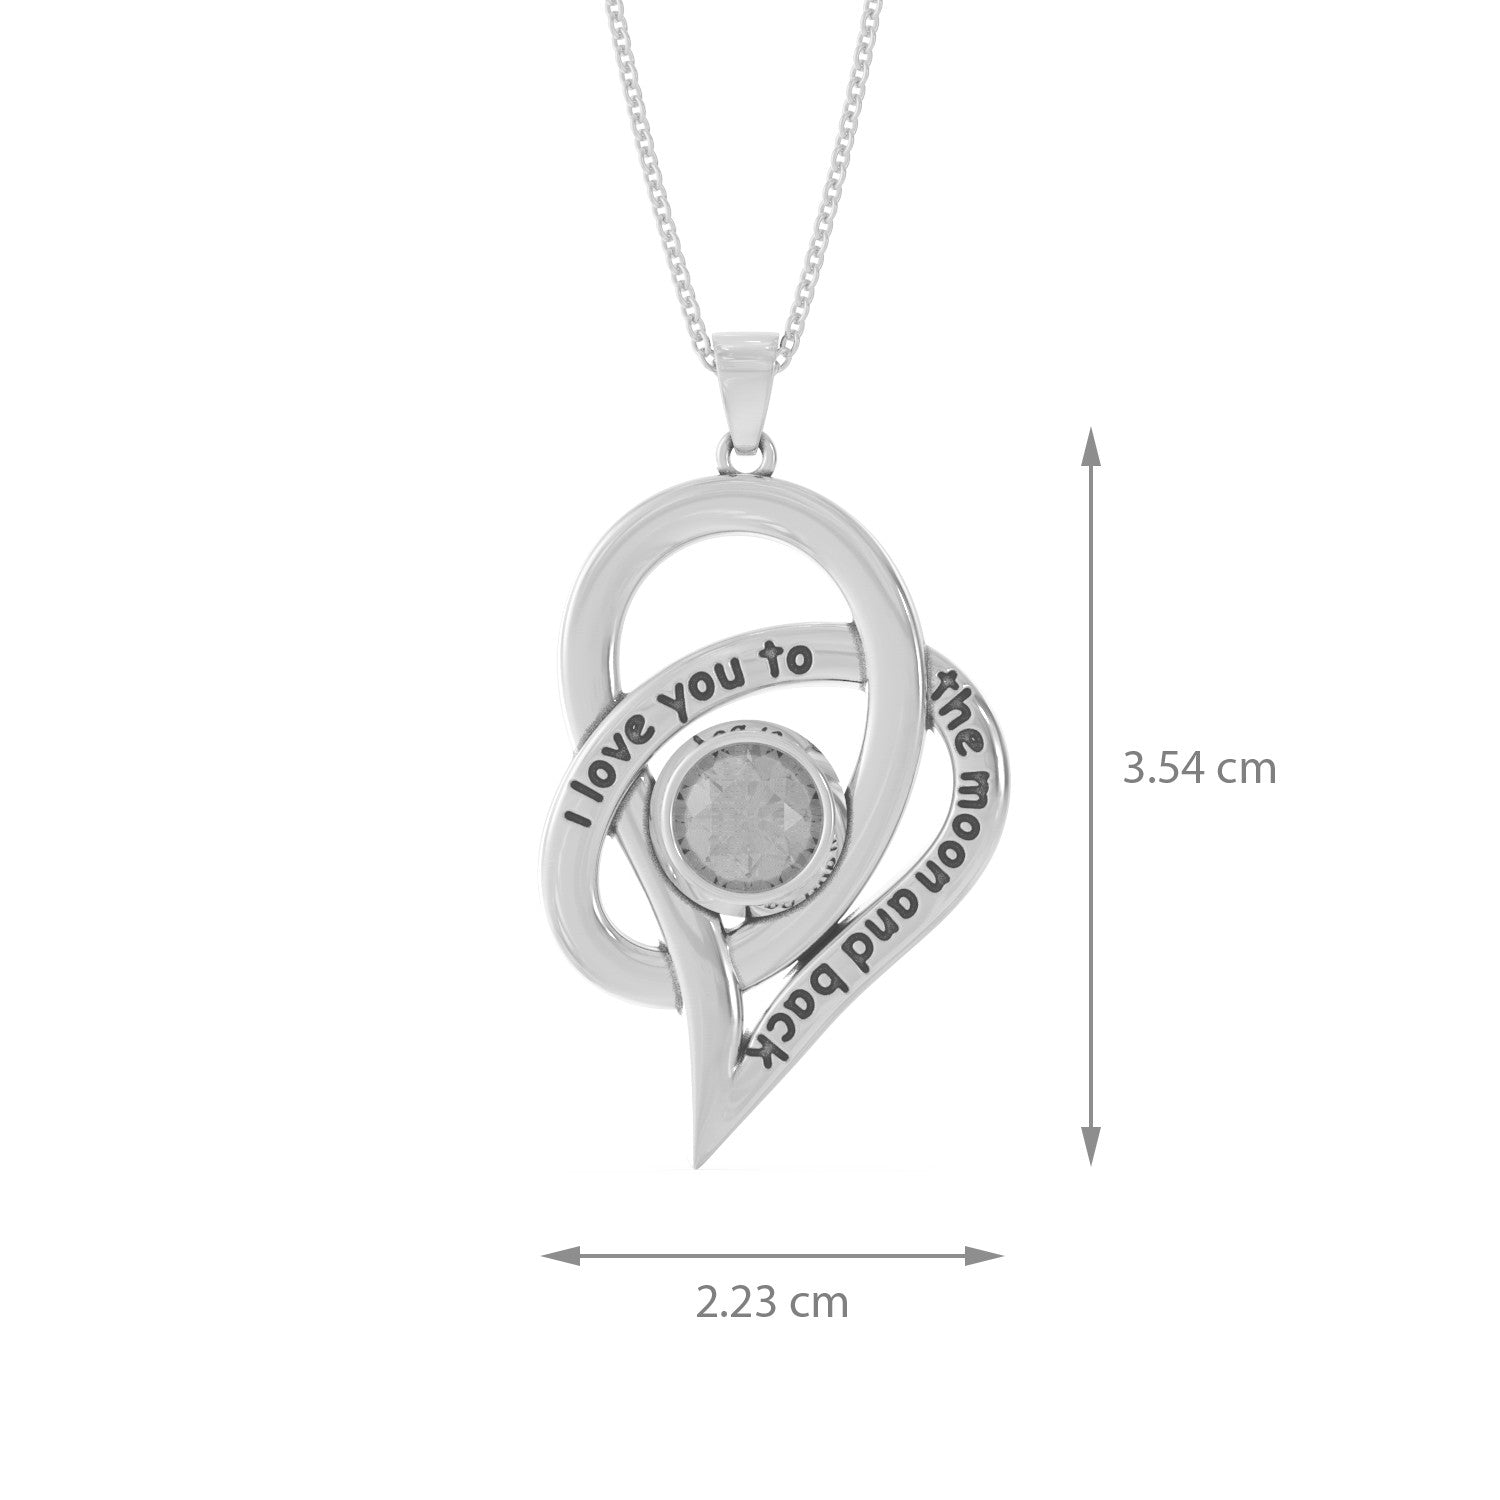 "ALOV Jewelry ""I Love You To The Moon and Back"" Love Heart Necklace"